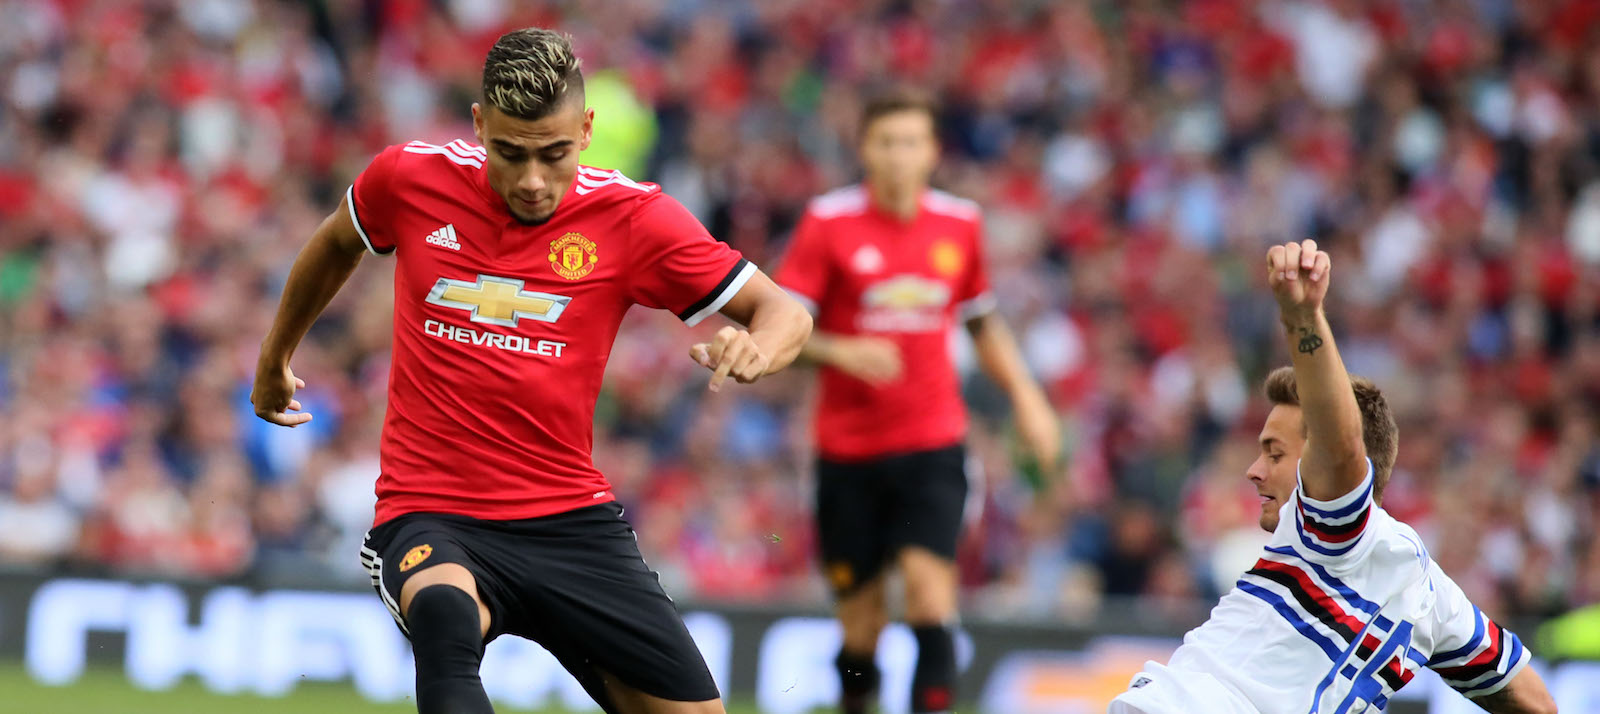 Manchester United fans delighted with Andreas Pereira's performance vs AC Milan